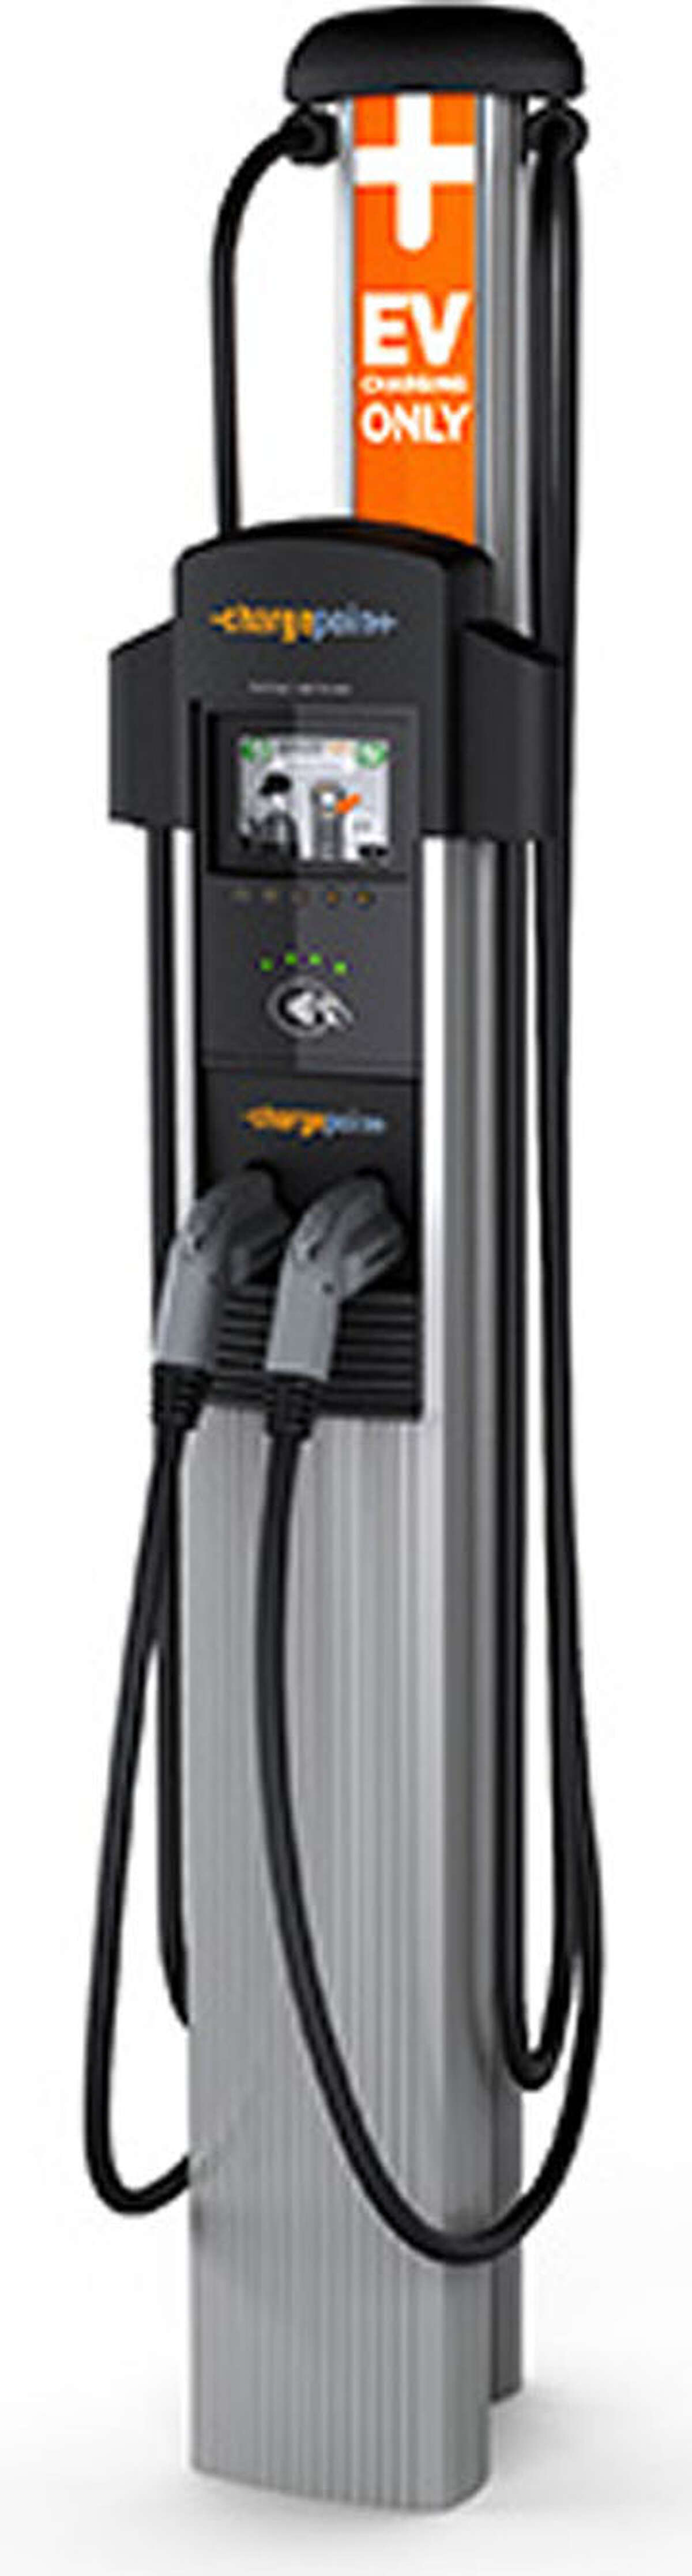 A ChargePoint public port similar to this will soon be offered to consumers in New Milford. May 2014